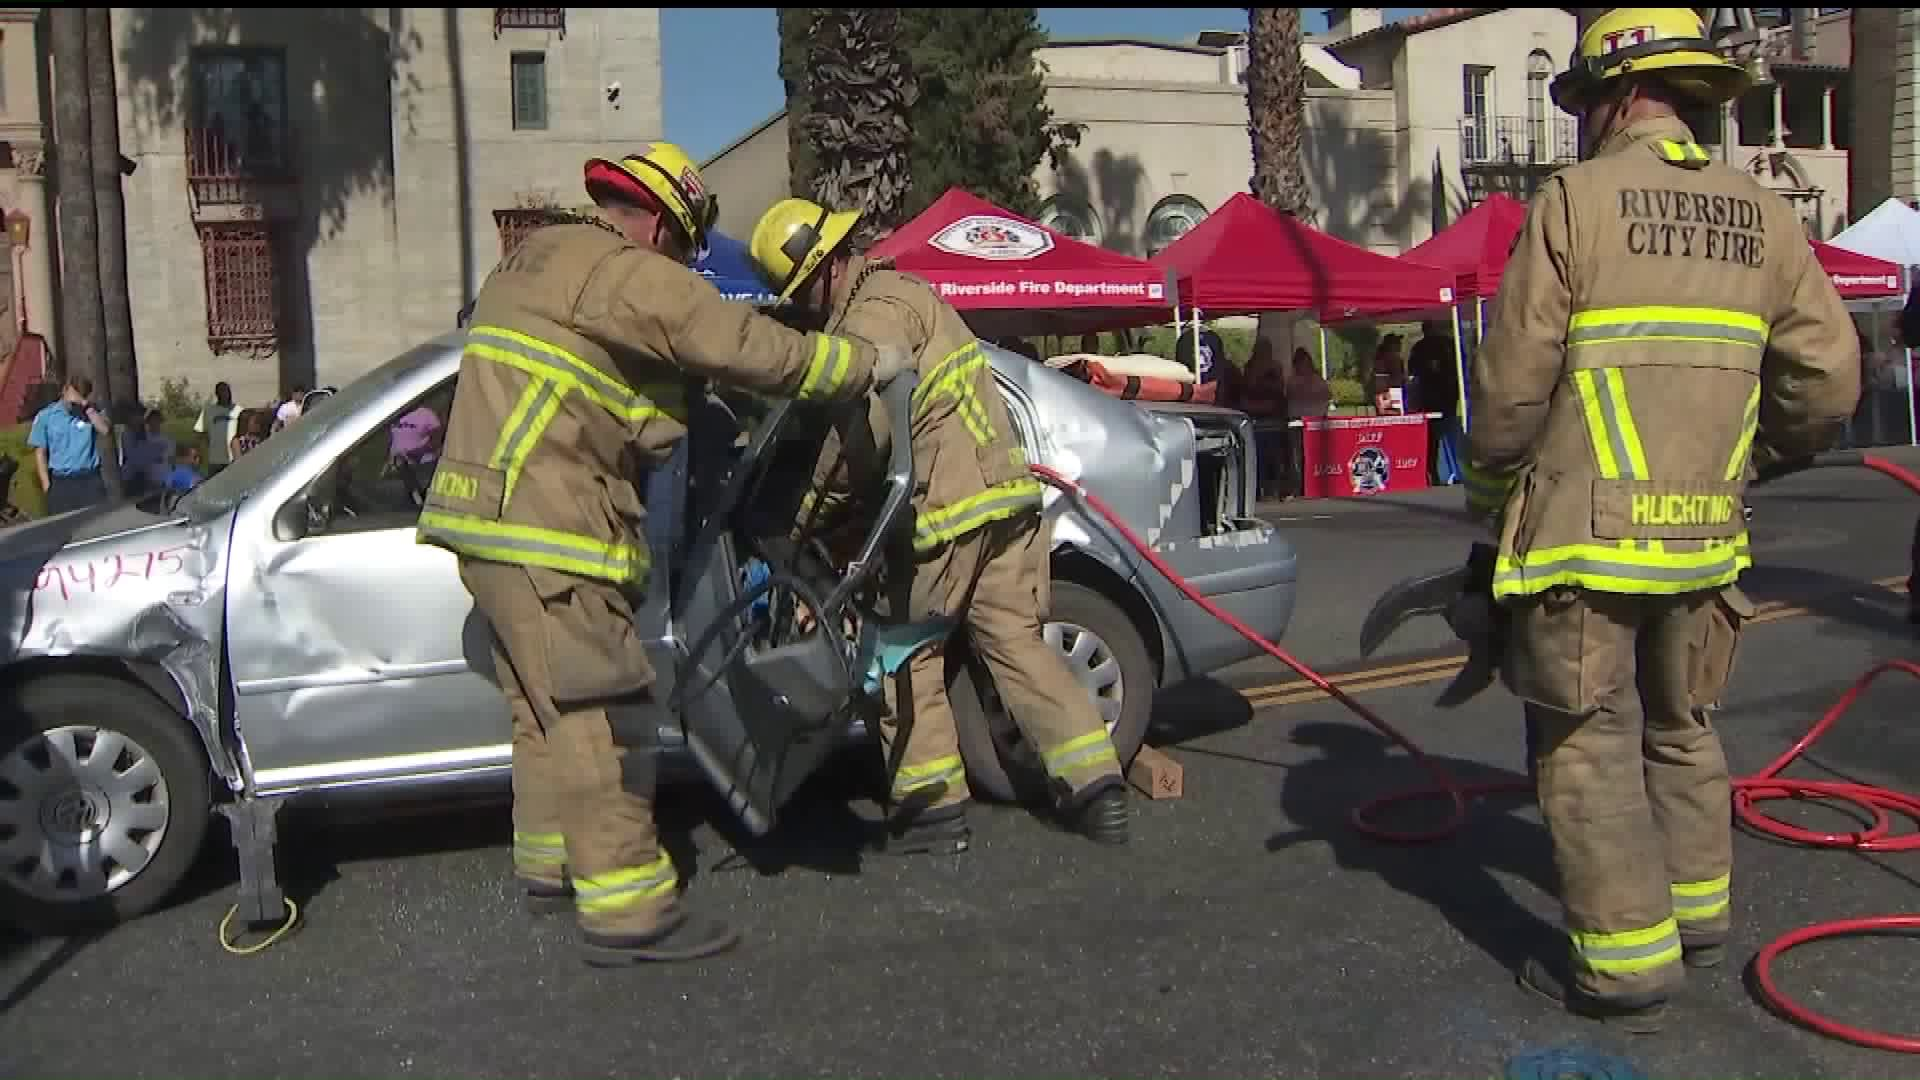 Riverside Fire Department firefighters take part in a demonstration at the Public Safety Expo on Oct. 6, 2019. (Credit: KTLA)